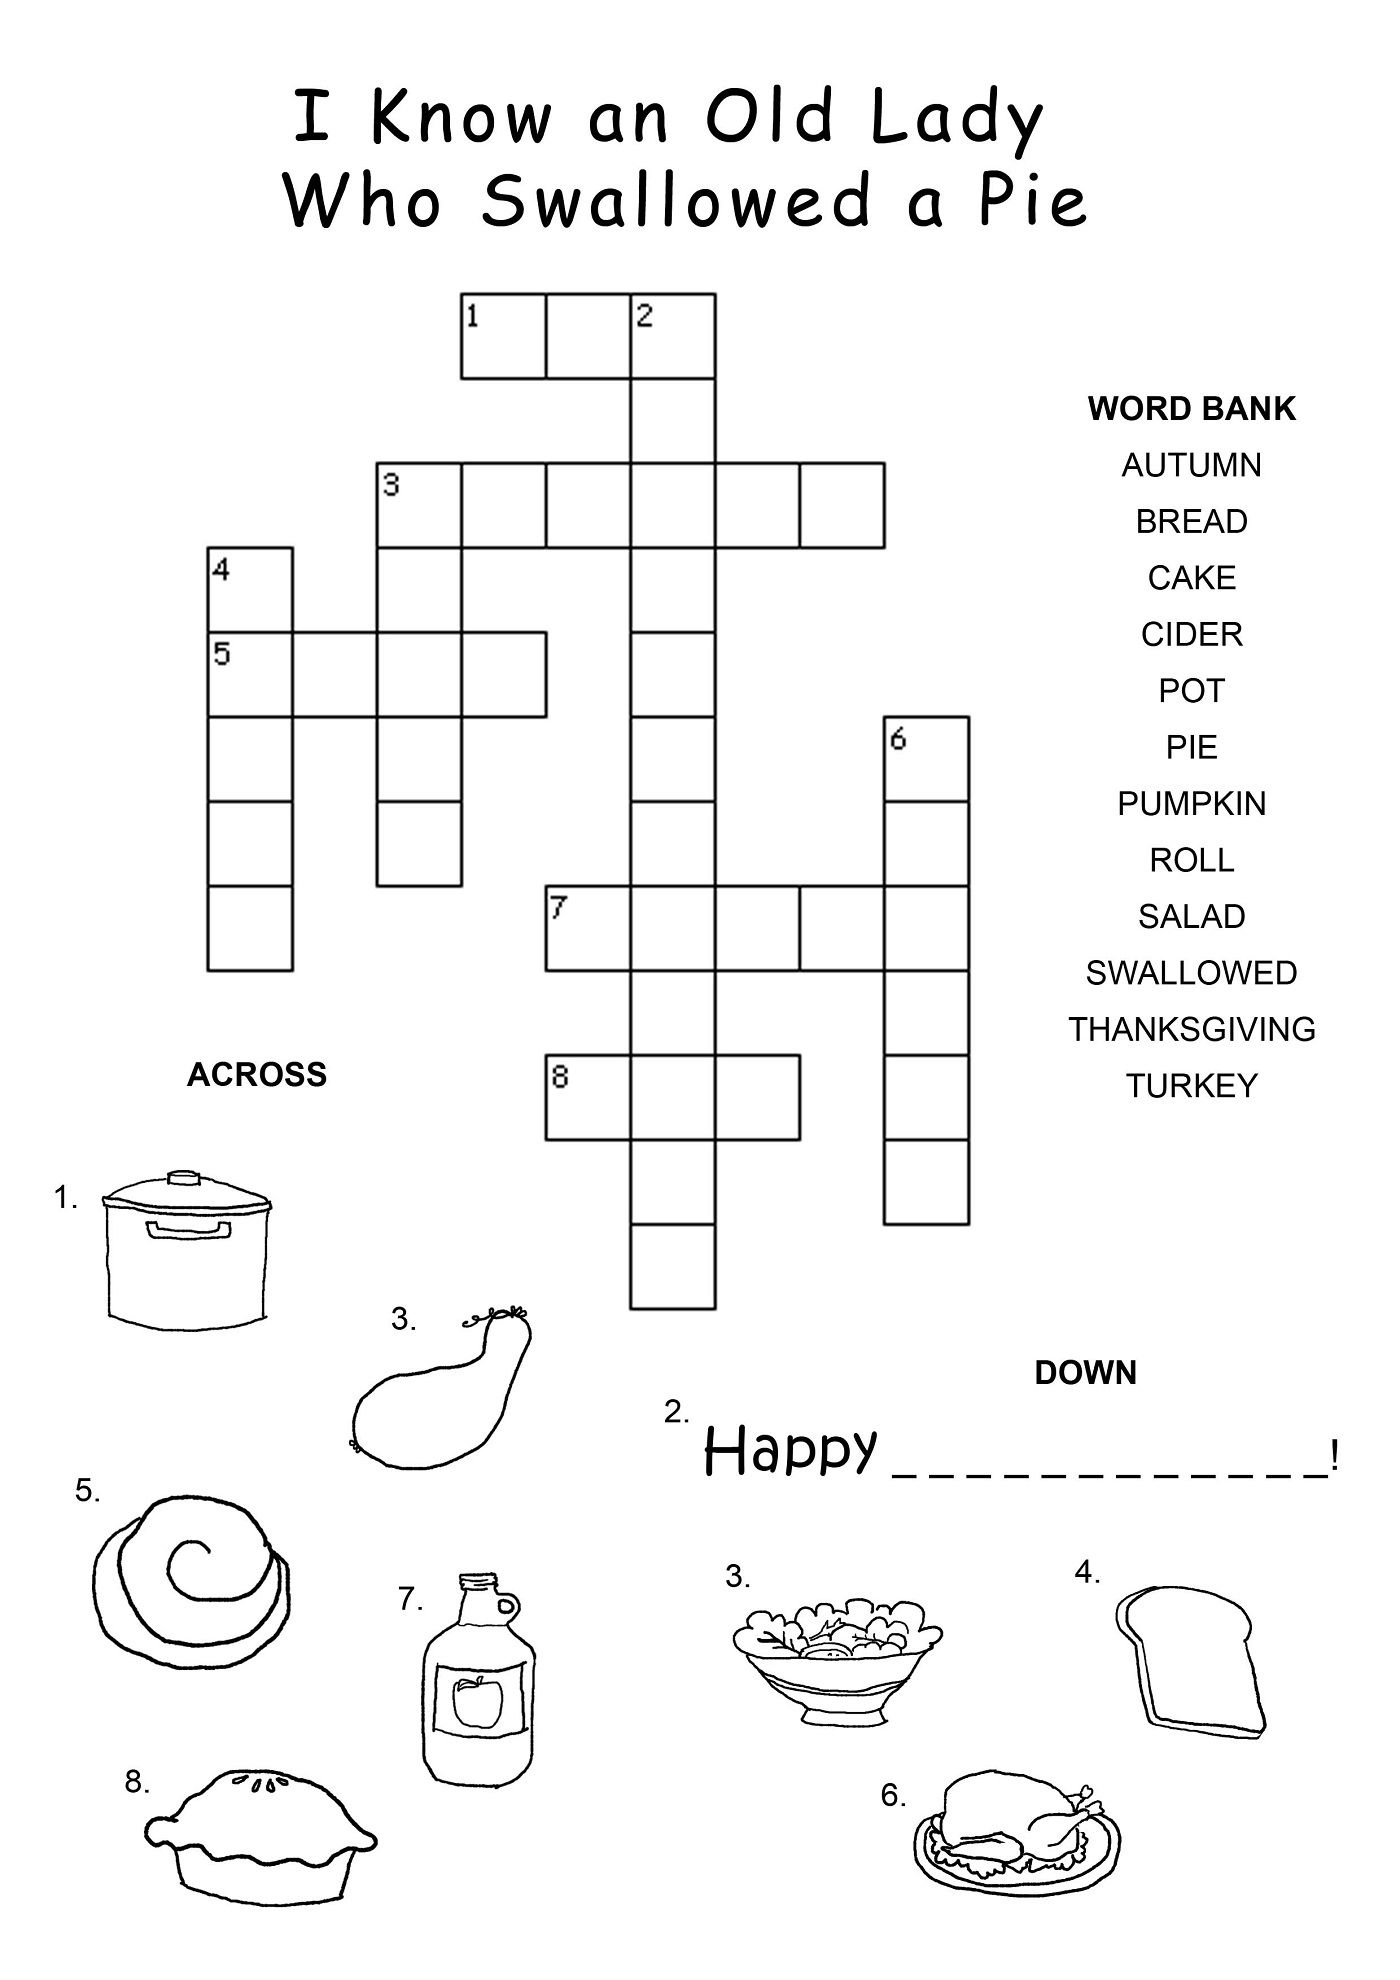 Fall Crossword Puzzle Printable That Are Witty